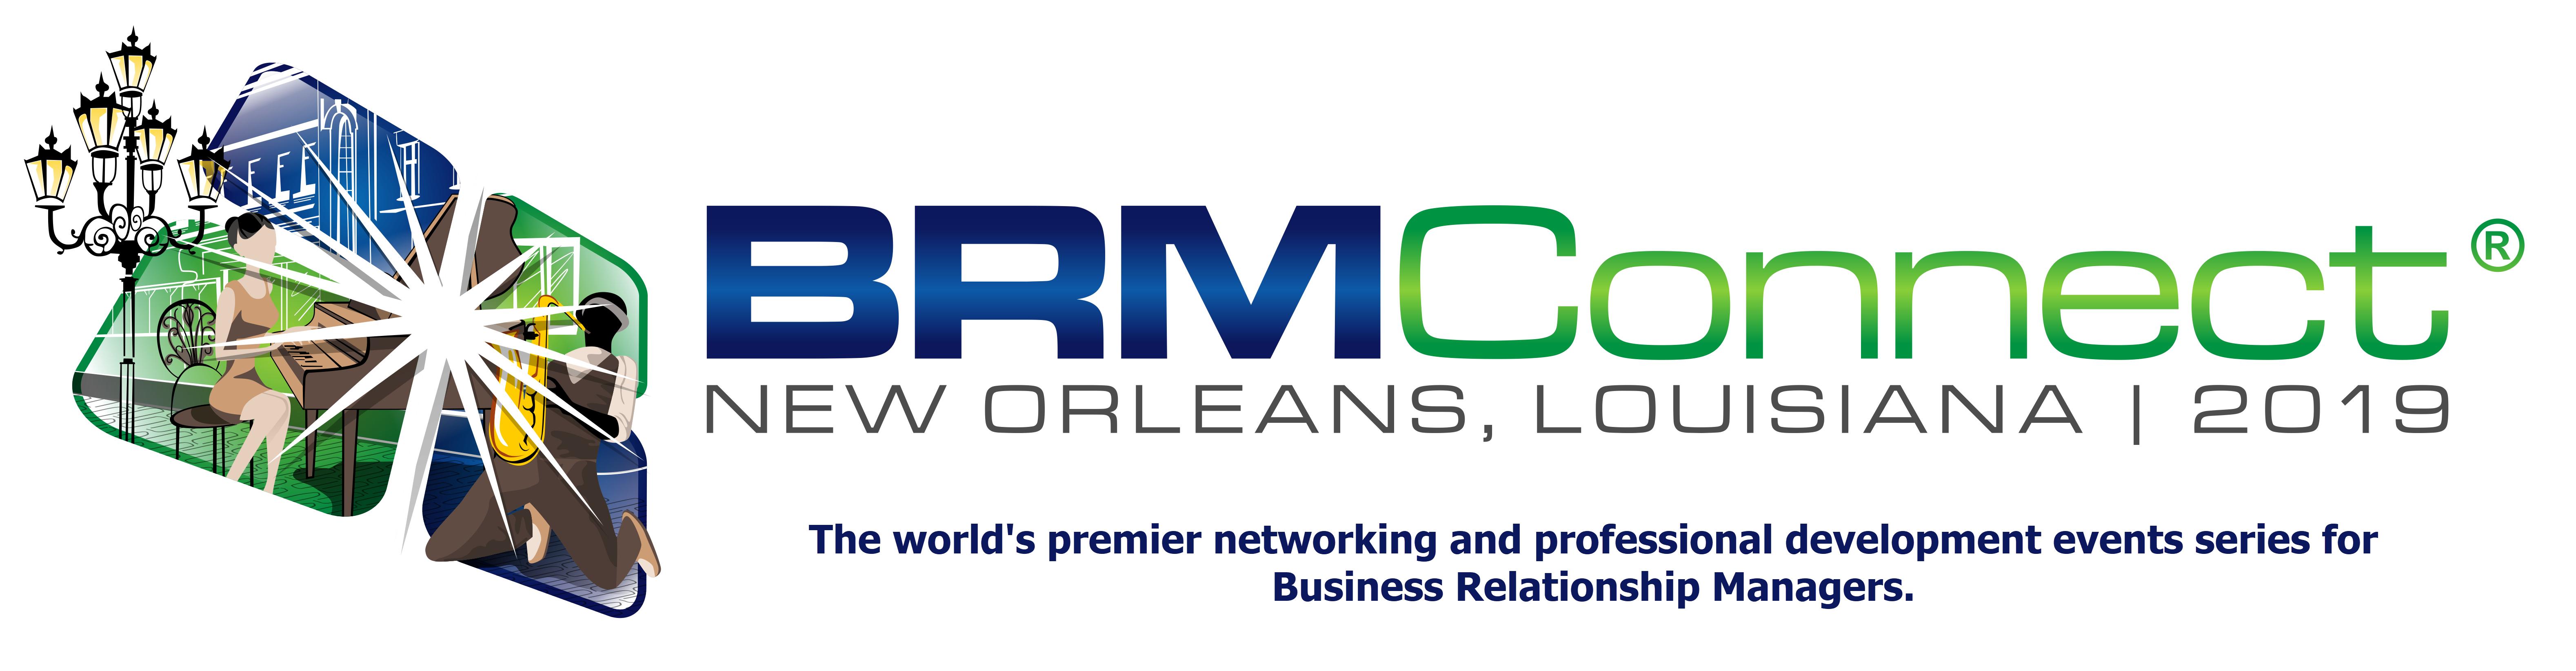 2019 World BRMConnect Conference - New Orleans (Oct 7-9)